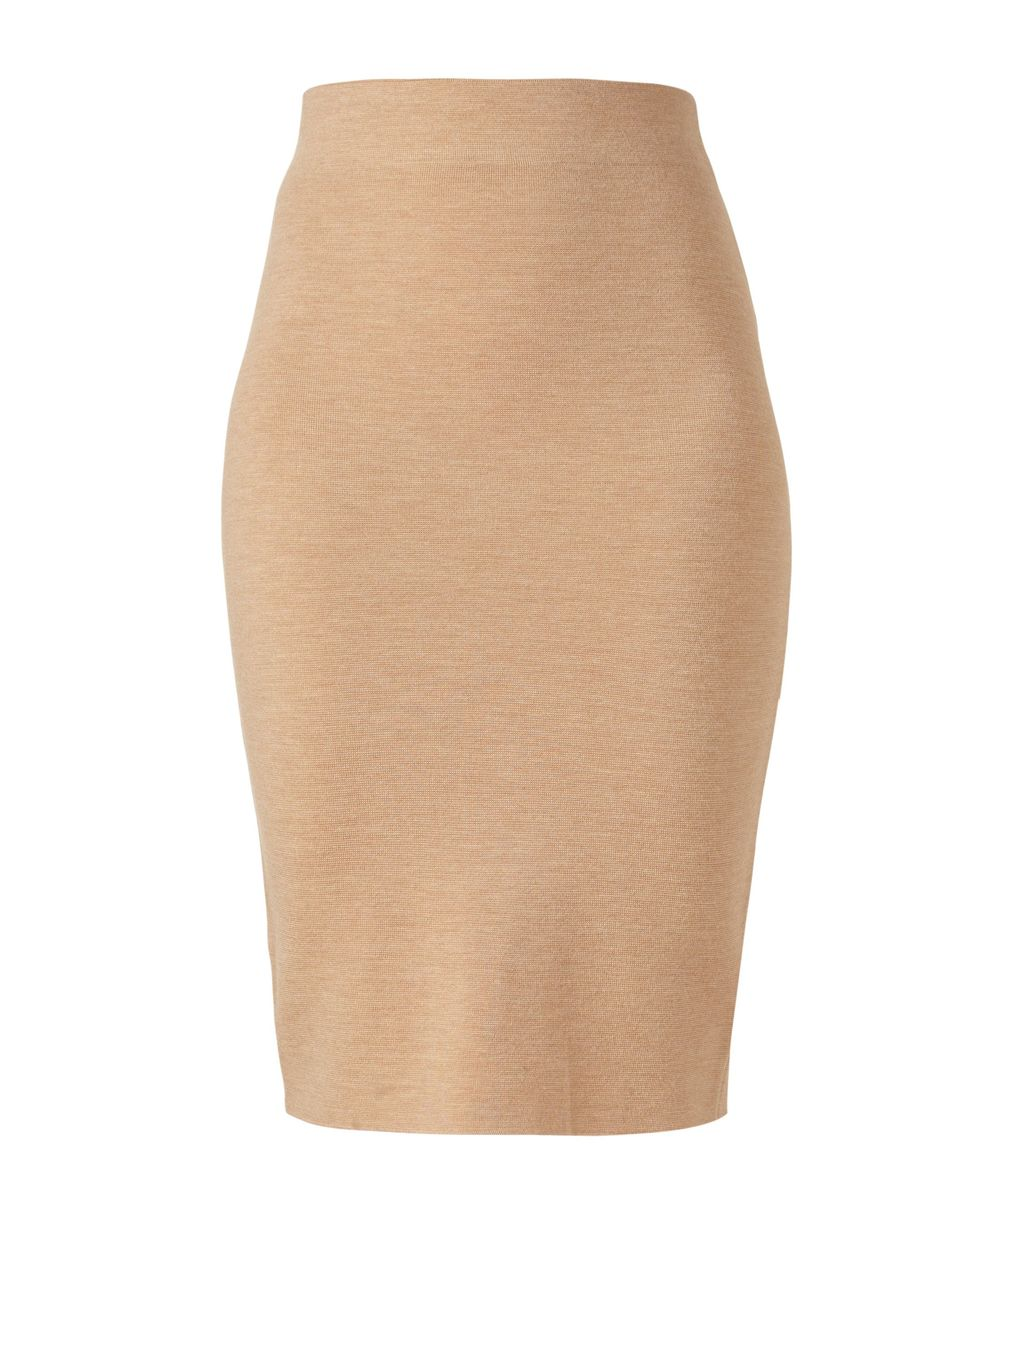 Milano Wool Skirt, Beige - pattern: plain; style: pencil; fit: tailored/fitted; waist: high rise; predominant colour: camel; occasions: work; length: just above the knee; fibres: wool - 100%; pattern type: fabric; texture group: woven light midweight; season: s/s 2016; wardrobe: basic